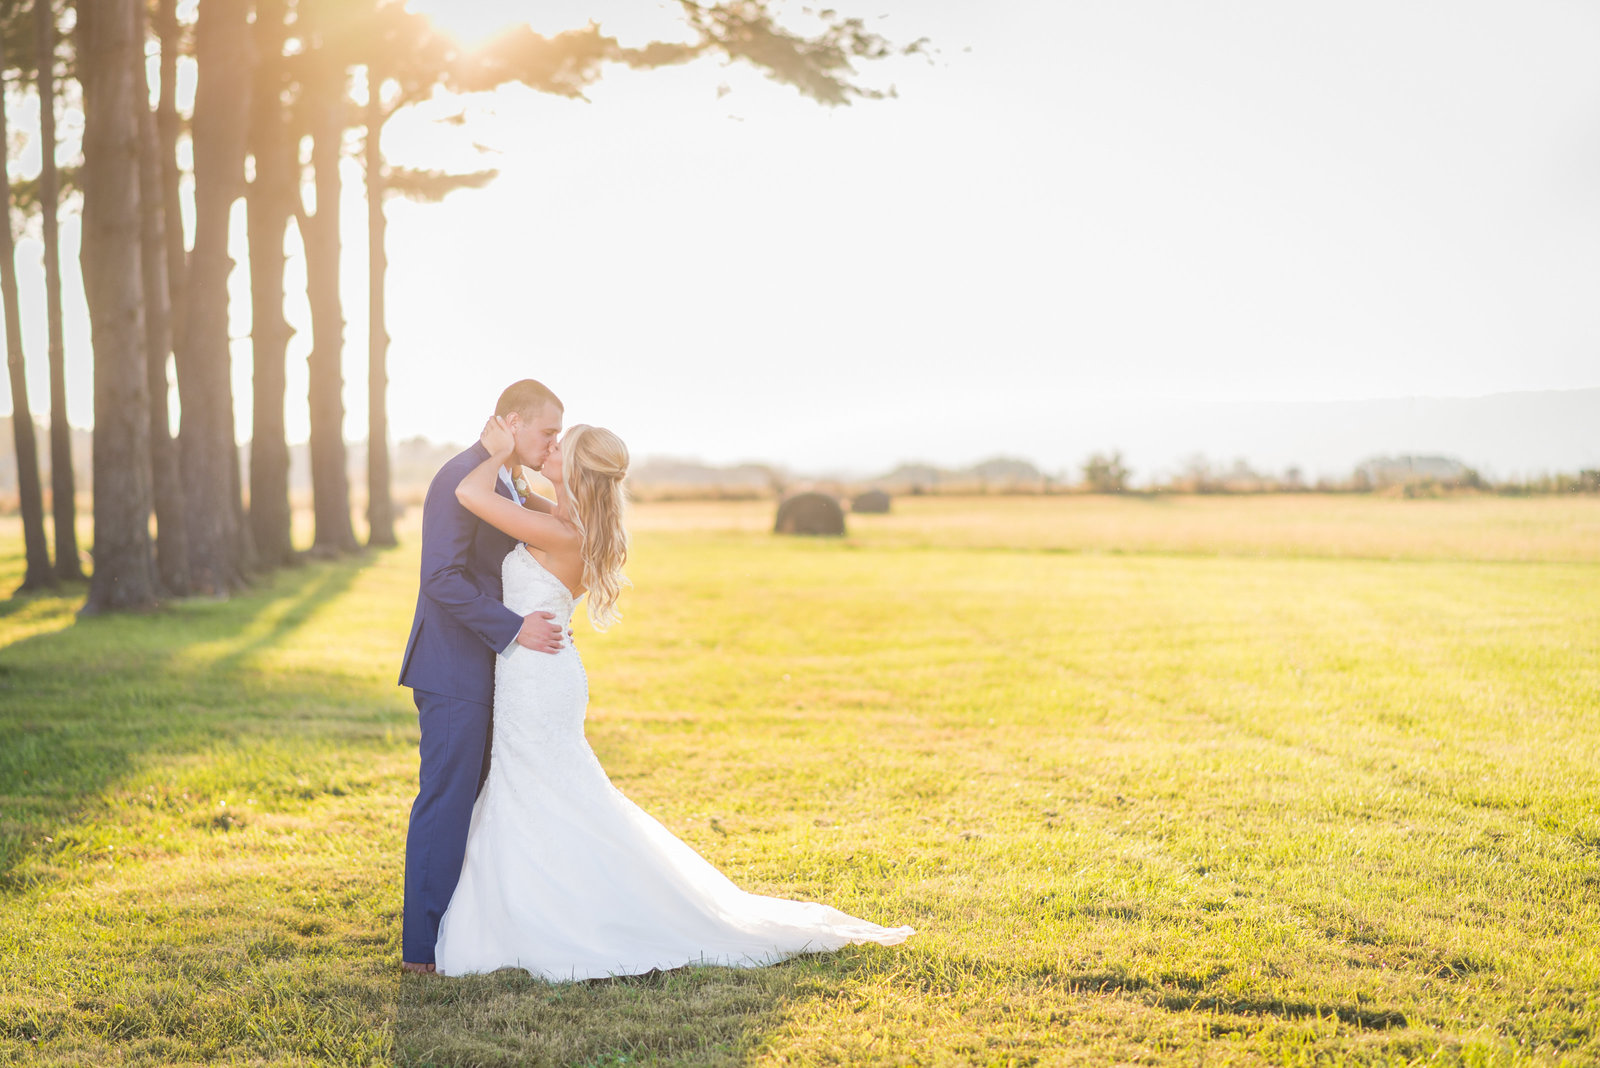 glen ellen farm wedding photography (18)